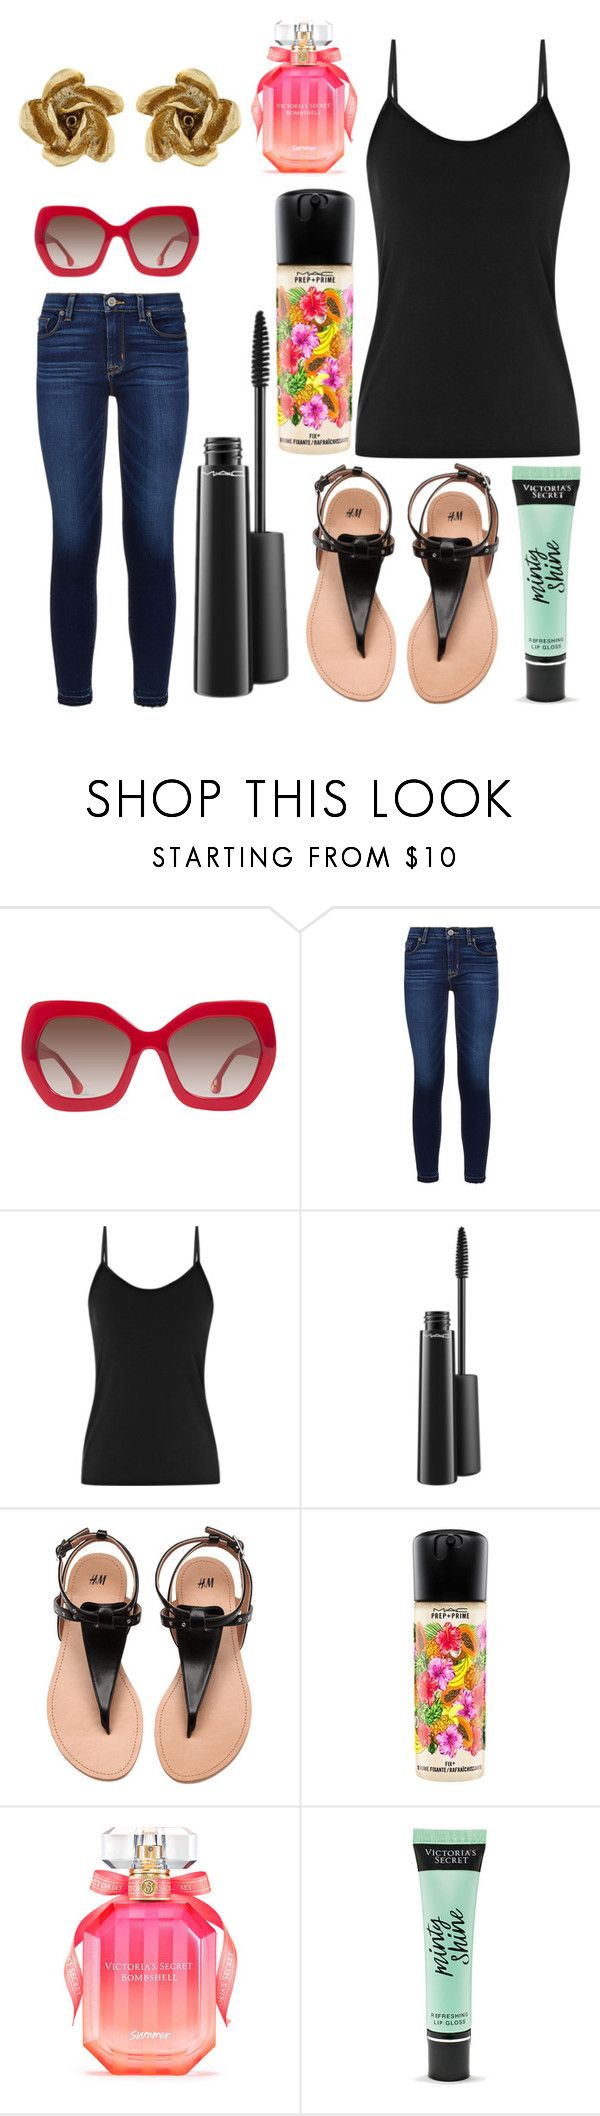 """Untitled #11599"" by ohnadine ❤ liked on Polyvore featuring Alice + Olivia, Hudson, Reiss, MAC Cosmetics, Victoria's Secret and Oscar de la Renta"